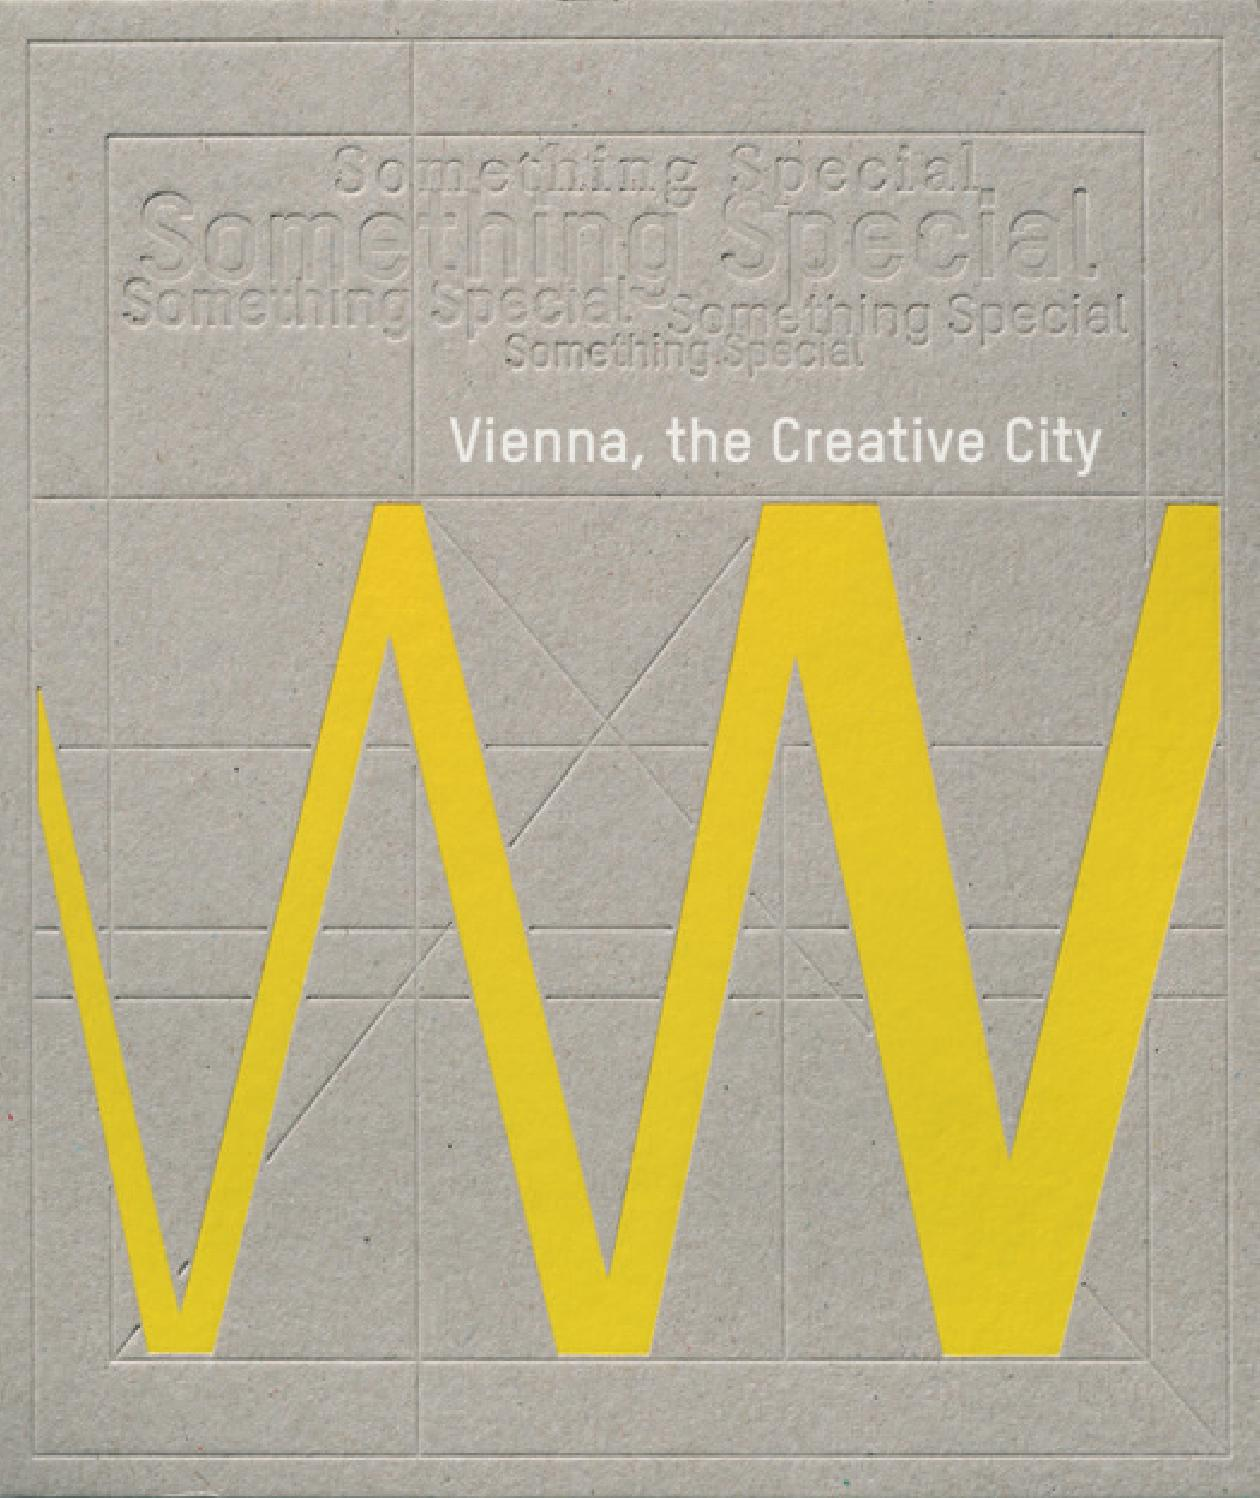 Something special vienna the creative city by wirtschaftsagentur something special vienna the creative city by wirtschaftsagentur wien kreativzentrum departure issuu altavistaventures Gallery